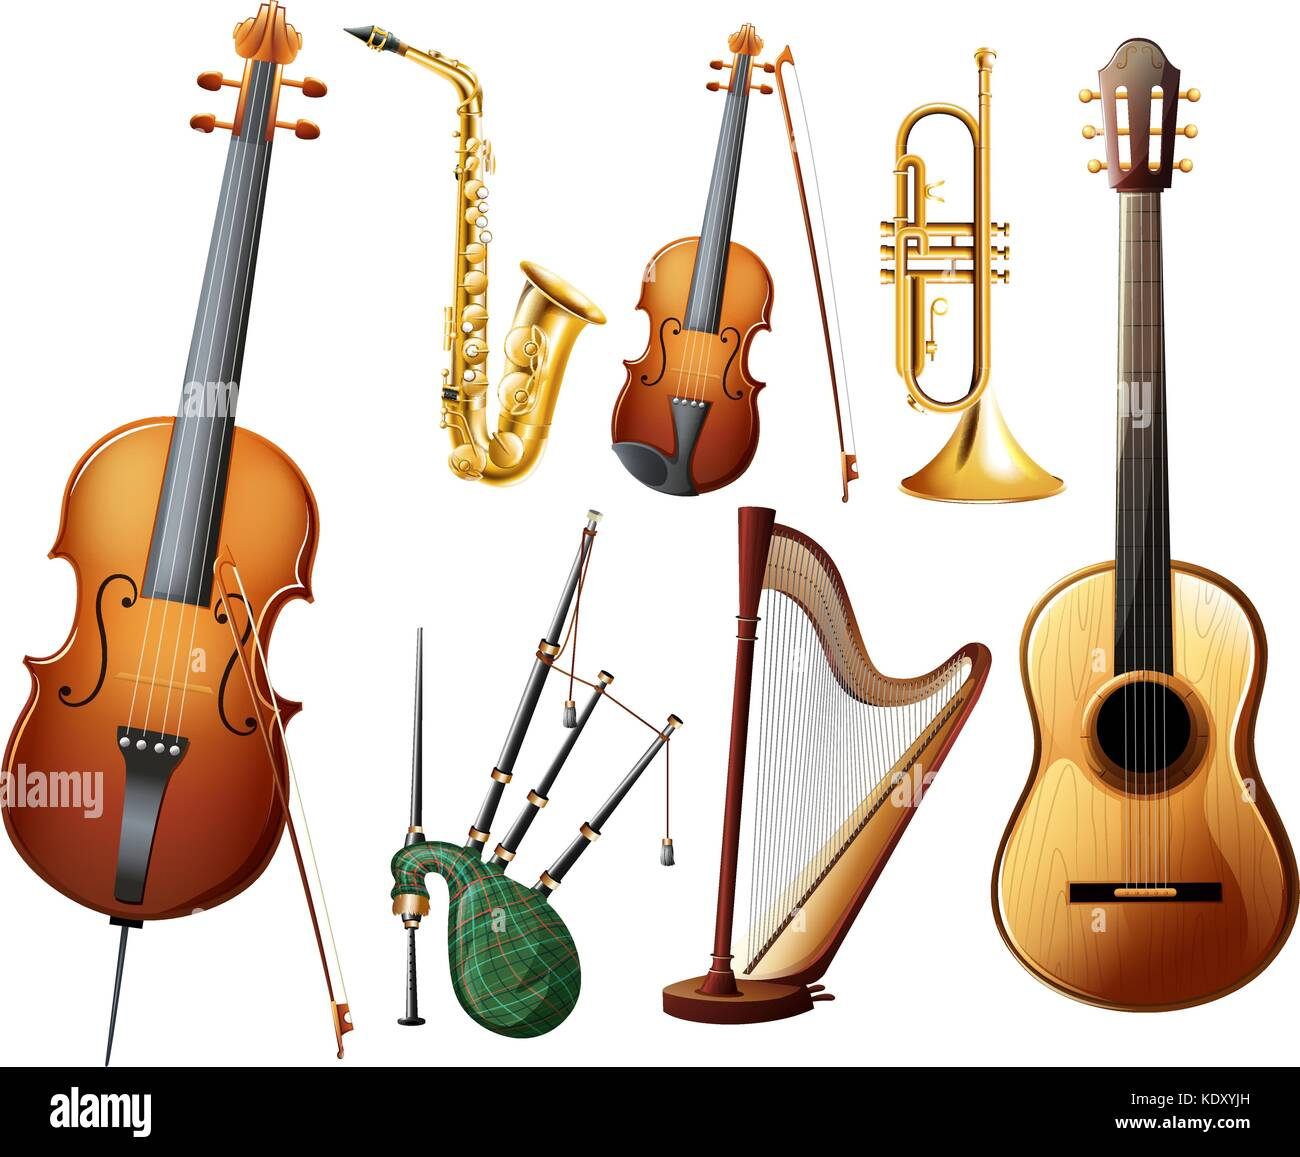 Worksheet Types Of Instruments different types of musical instruments illustration stock vector illustration